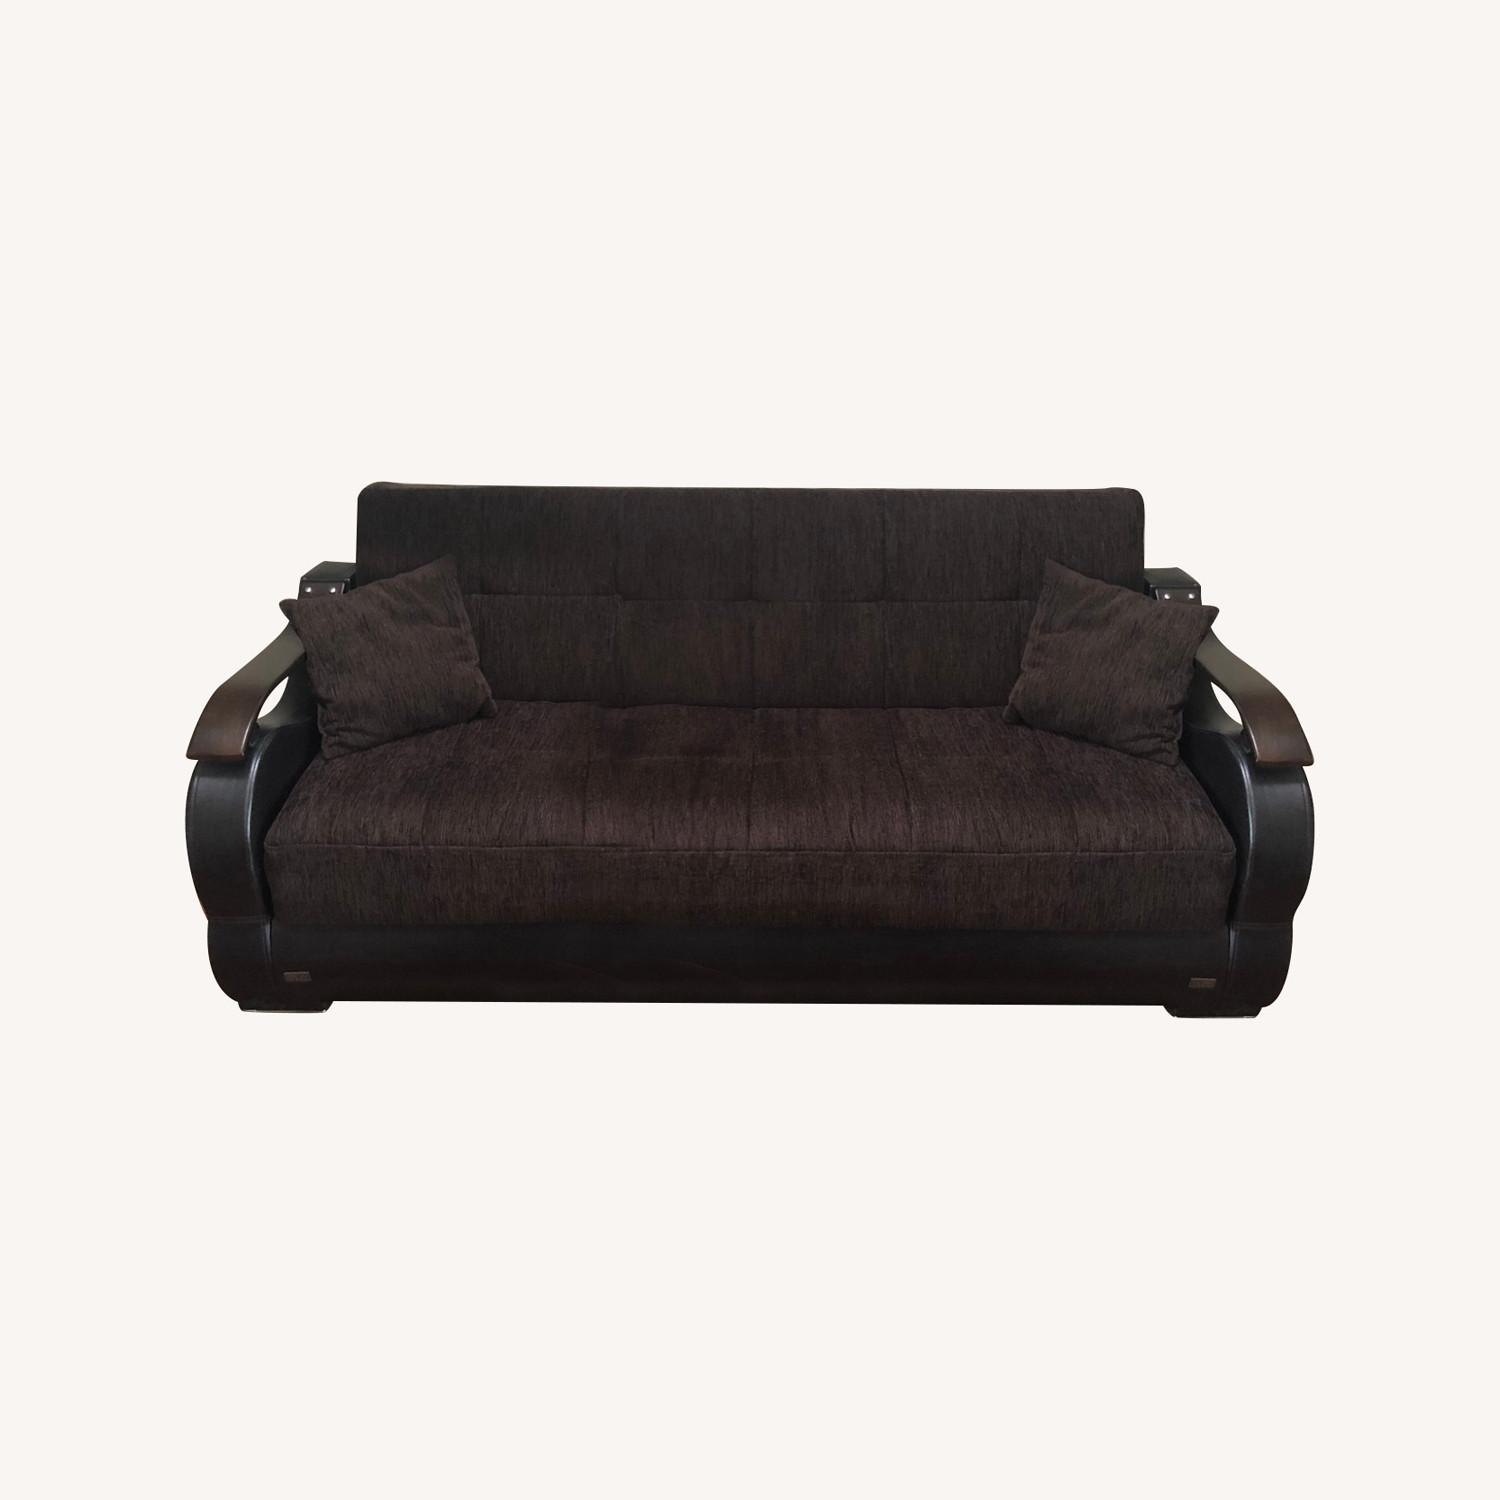 Ashley Furniture Coffee Brown Convertible Couch/Futon - image-0